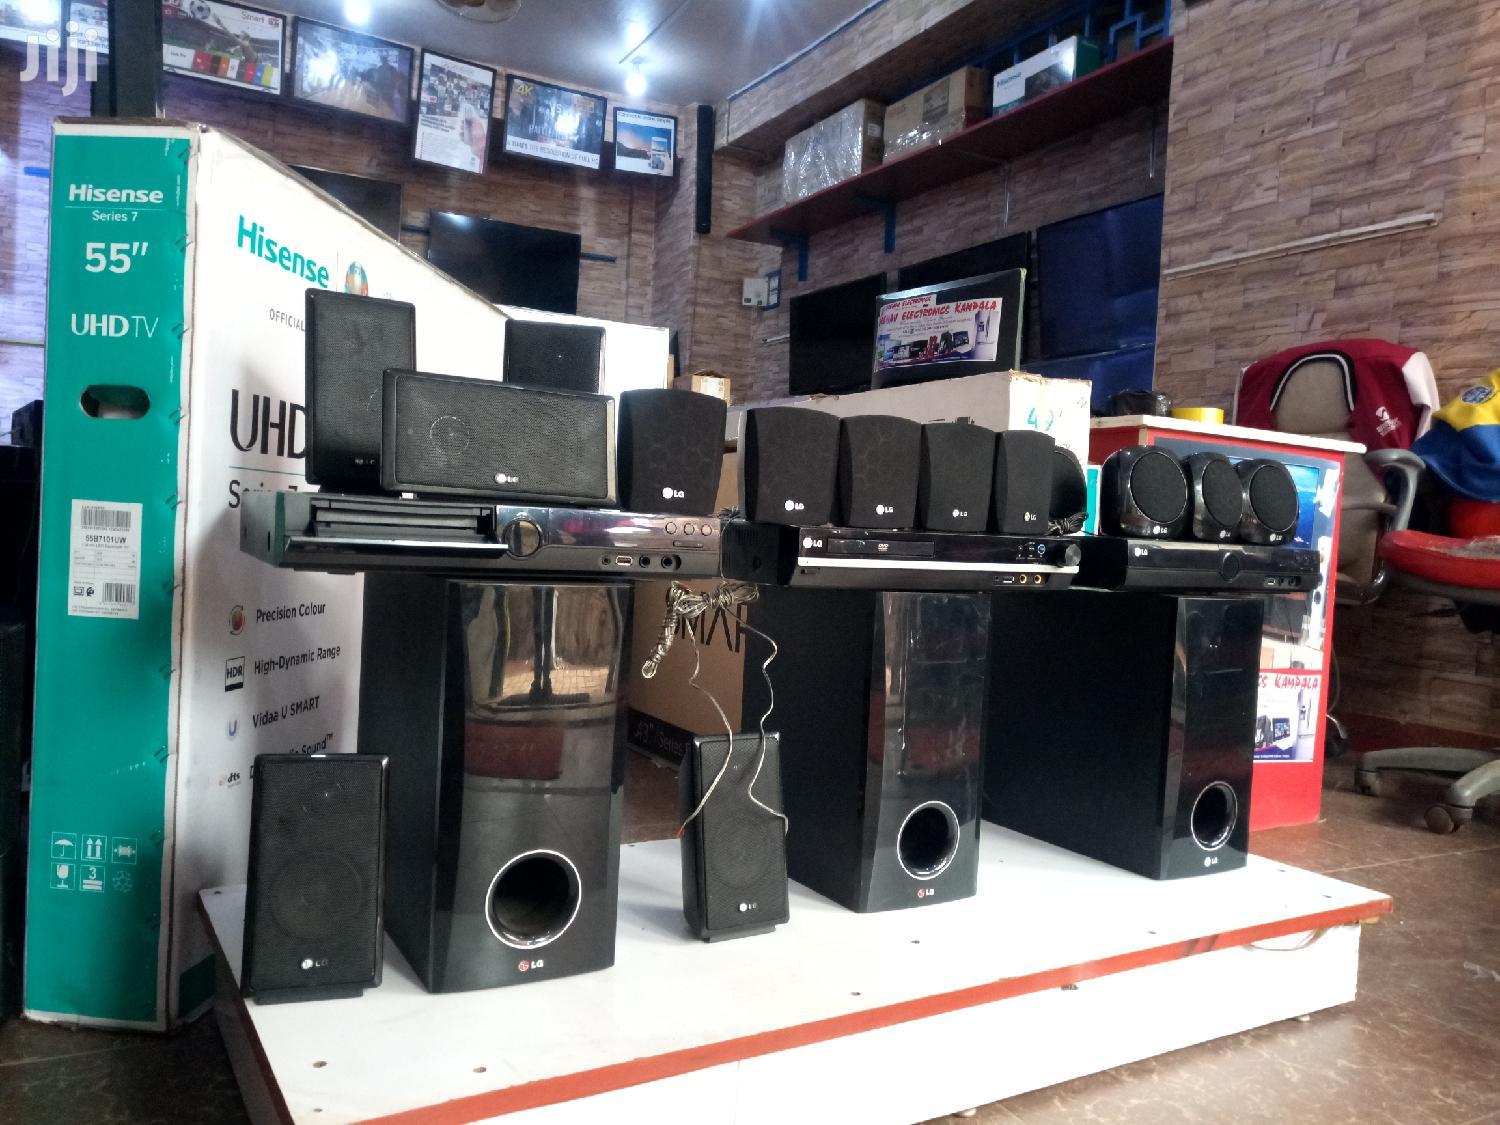 Archive: Original LG Home Theater Sound System